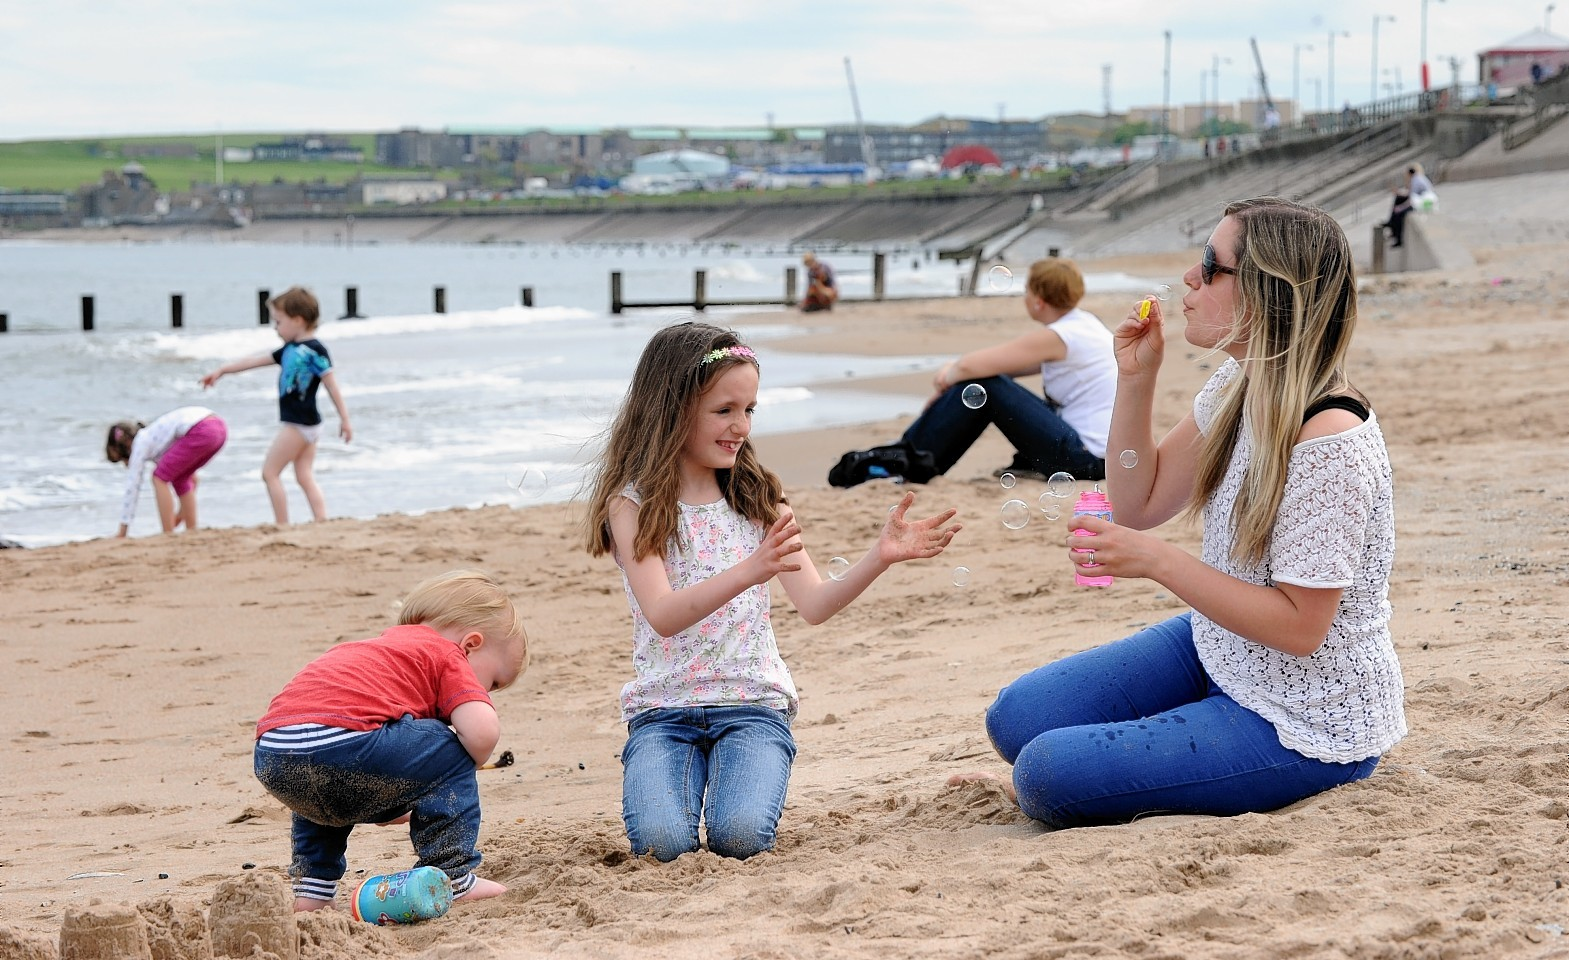 It is expected to be overcast in the north east for the next few days, although a warm summer has been predicted